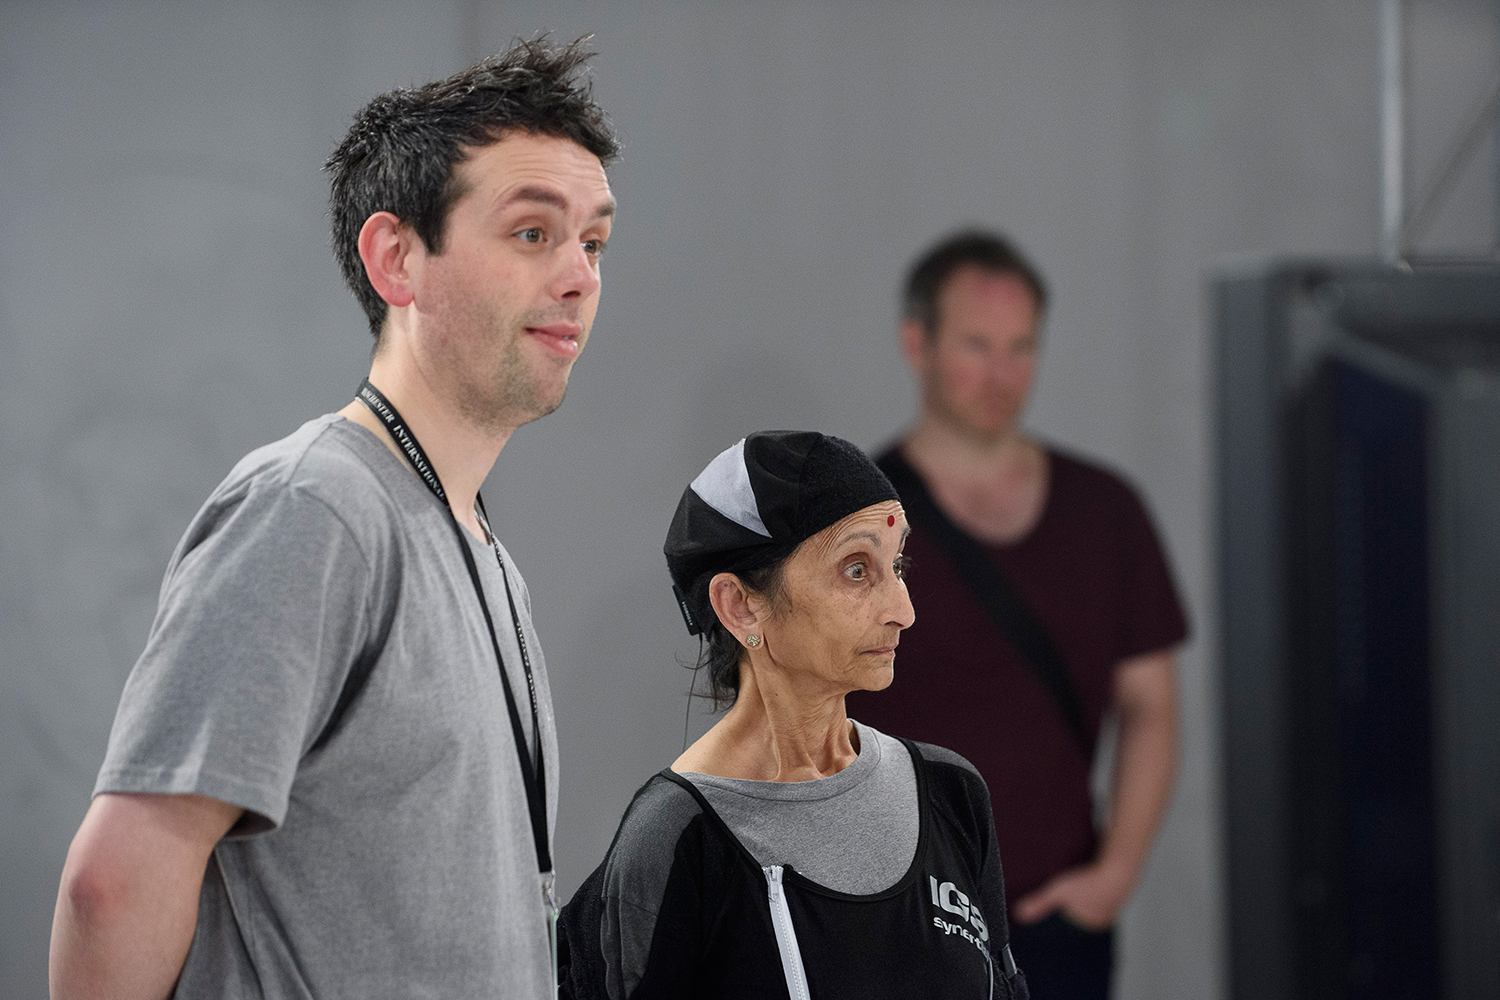 Sacred Sounds Women's Choir member Asha with Ed Atkins, taking part in 'Performance Capture' at Manchester Art Gallery for MIF15 Photo: Joel Chester Fildes for Manchester International Festival